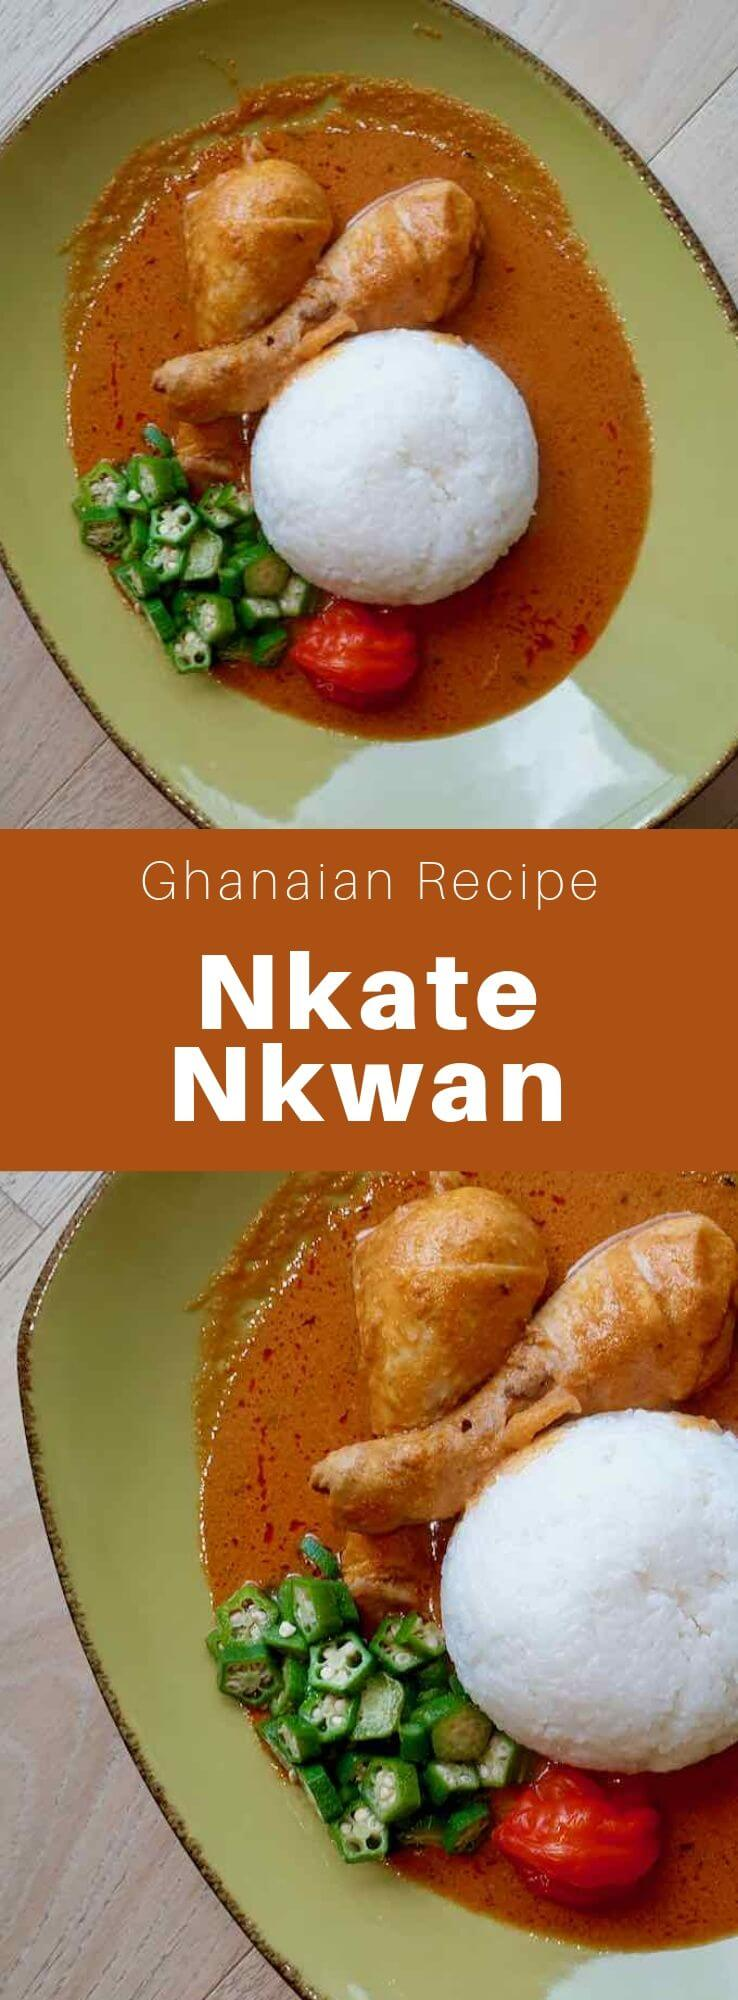 Nkate nkwan is one of Ghana's most famous national dishes. It is a soup made from peanuts, also known as peanut butter soup, peanut or groundnut soup. #Ghana #GhanaianCuisine #GhanaianFood #GhanaianRecipe #AfricanCuisine #AfricanFood #AfricanRecipe #WorldCuisine #196flavors